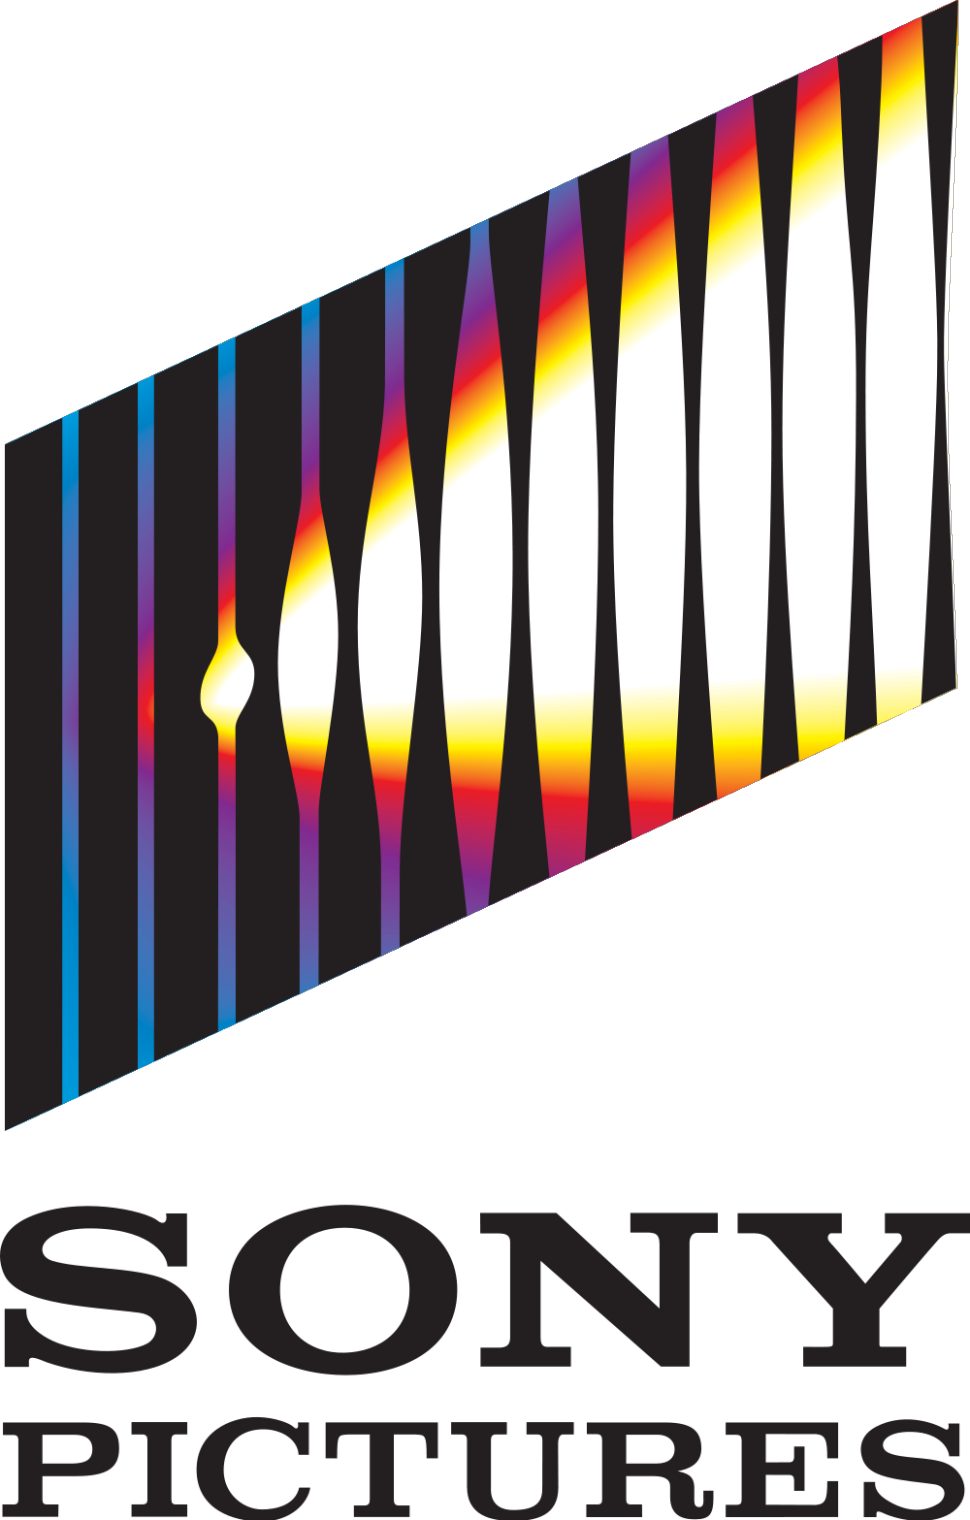 sony-pictures-logo.png